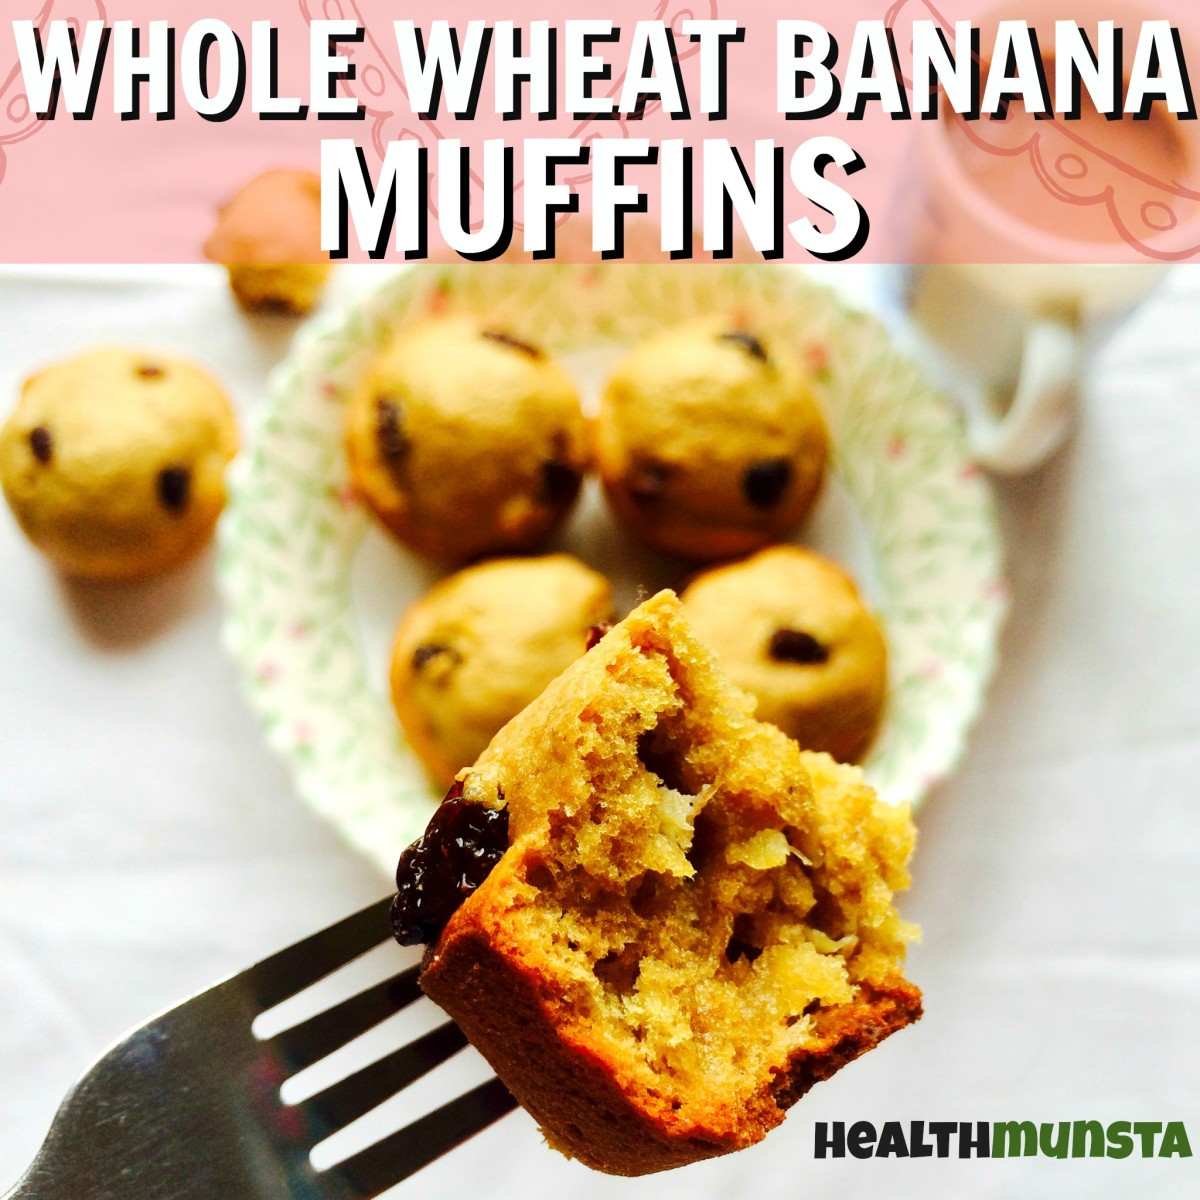 Totally healthy whole wheat banana muffins that taste OH-SO-GOOD!